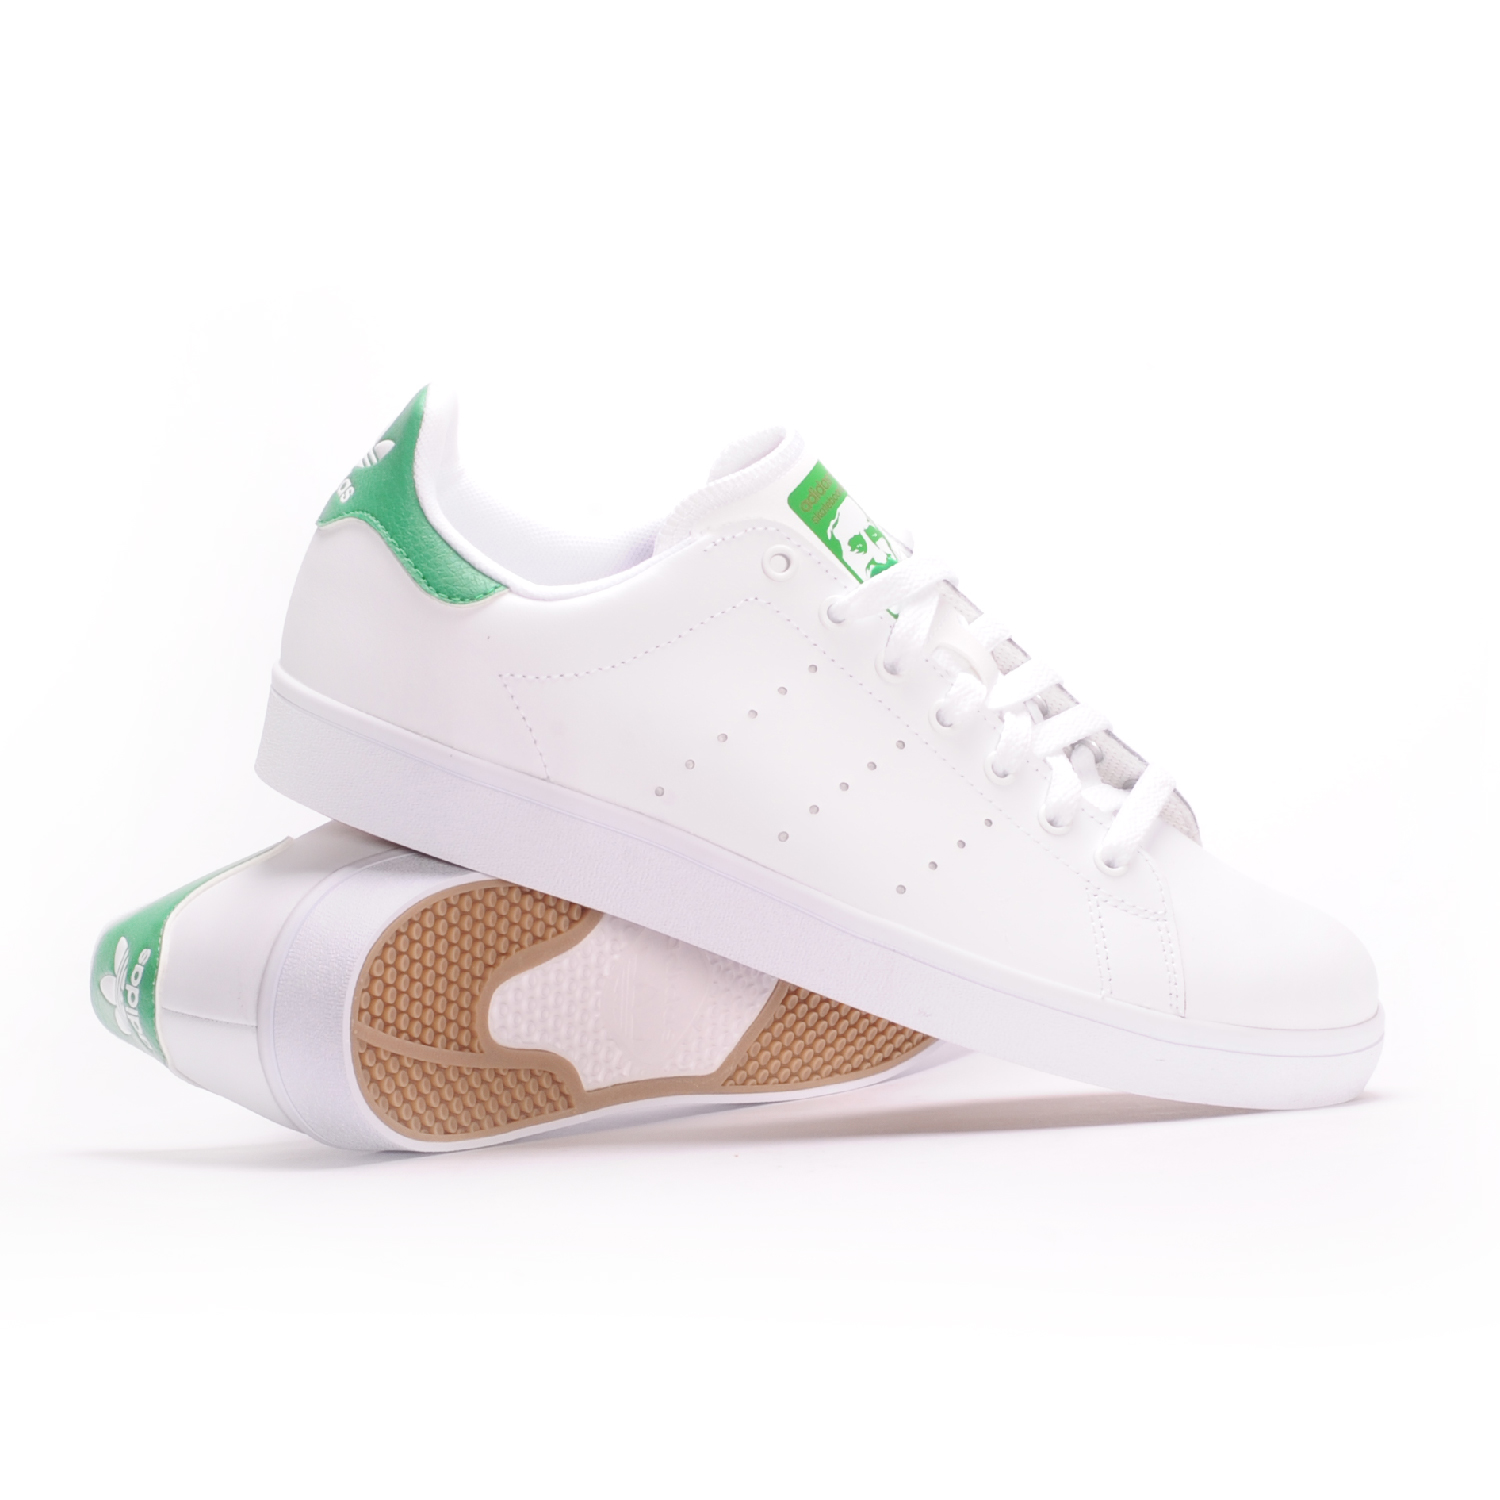 Adidas Stan Smith Vulc (White/White/Green) Men's Skate Shoes